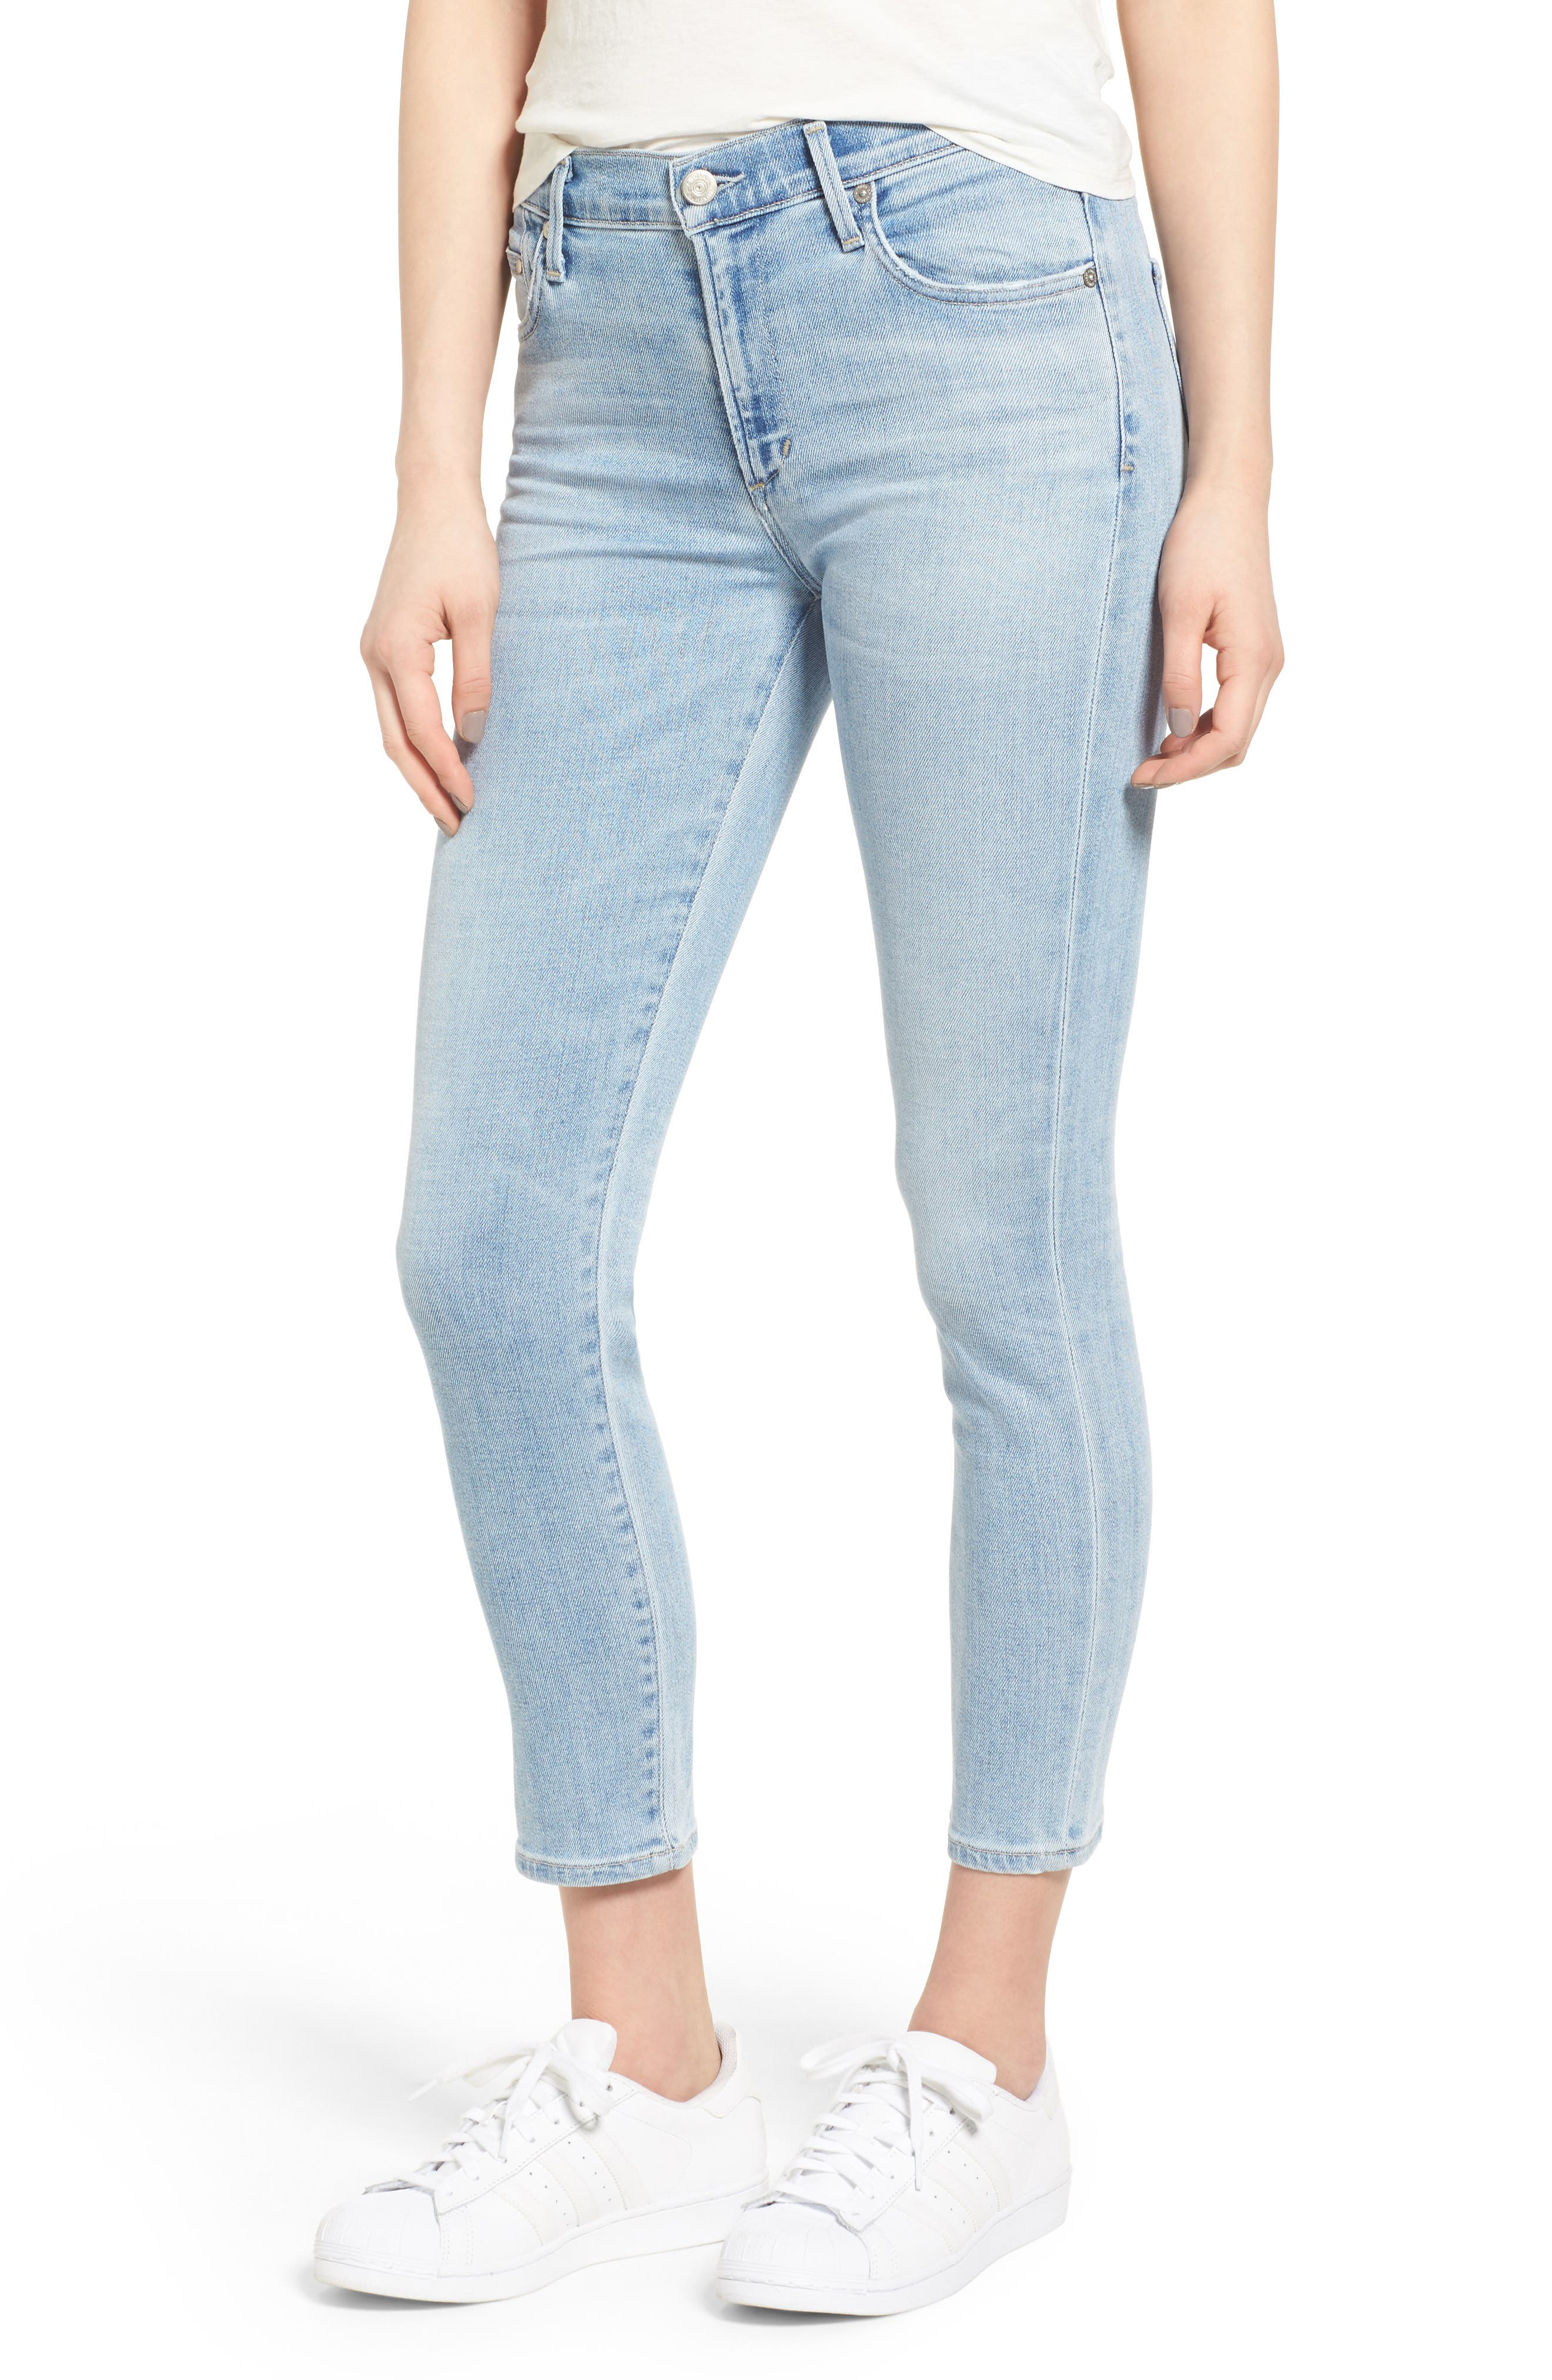 Main Image - Citizens of Humanity Rocket High Waist Crop Skinny Jeans (Oracle Blue)